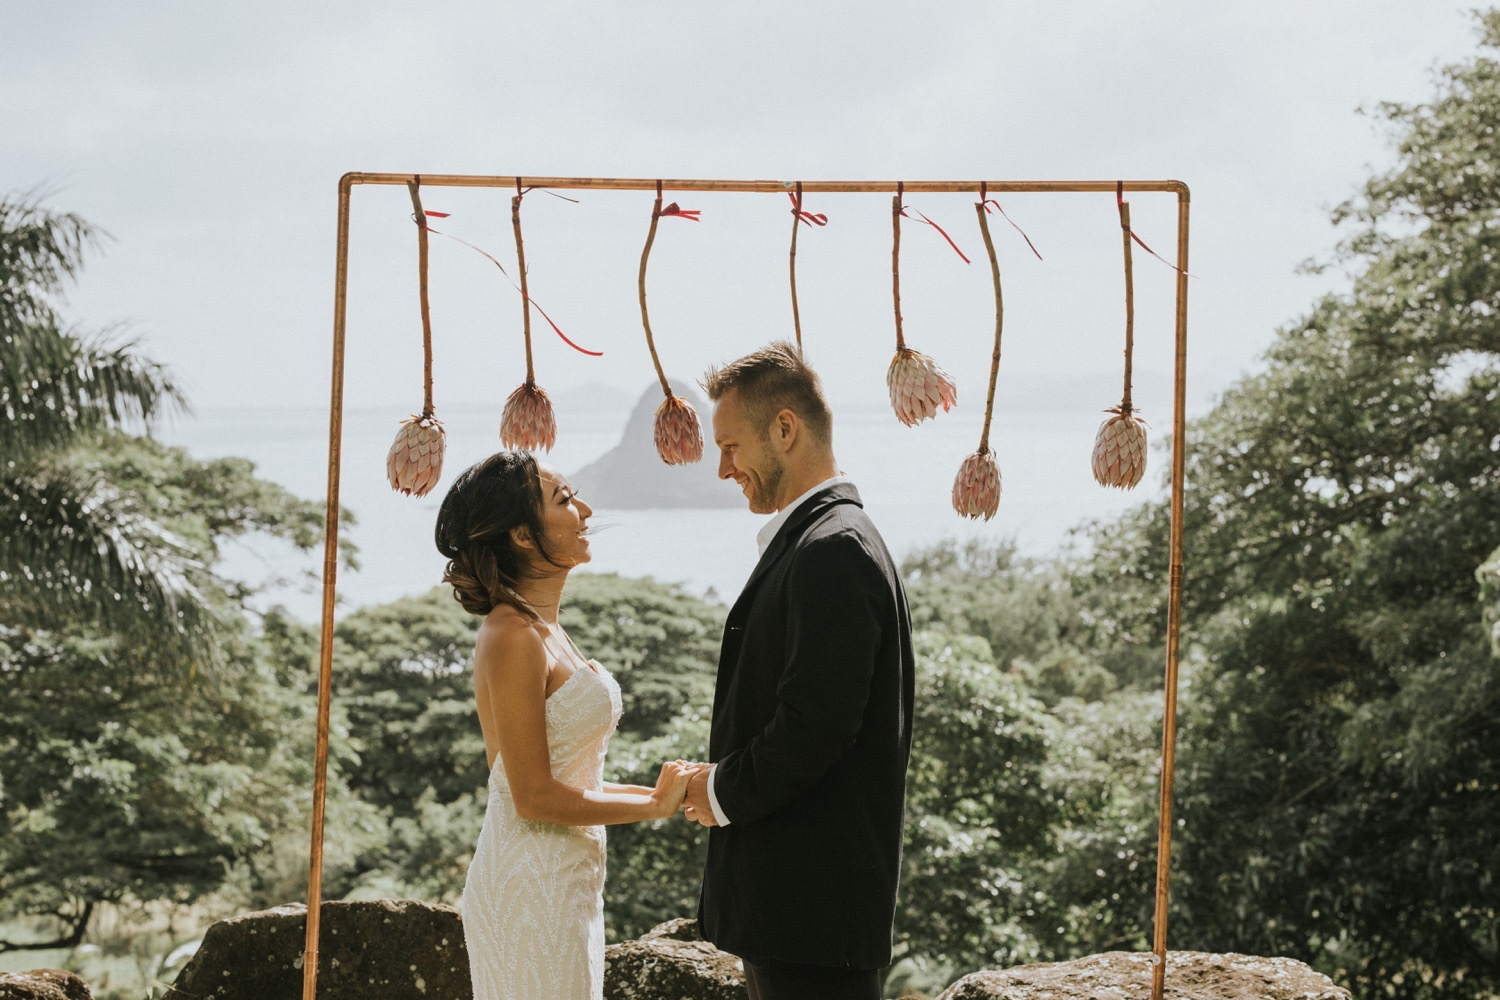 kualoa ranch, wedding at kualoa ranch, kualoa ranch wedding photographer, oahu wedding photographer, elopement at kualoa ranch, jurassic park wedding, destination wedding photographer, oahu elopement